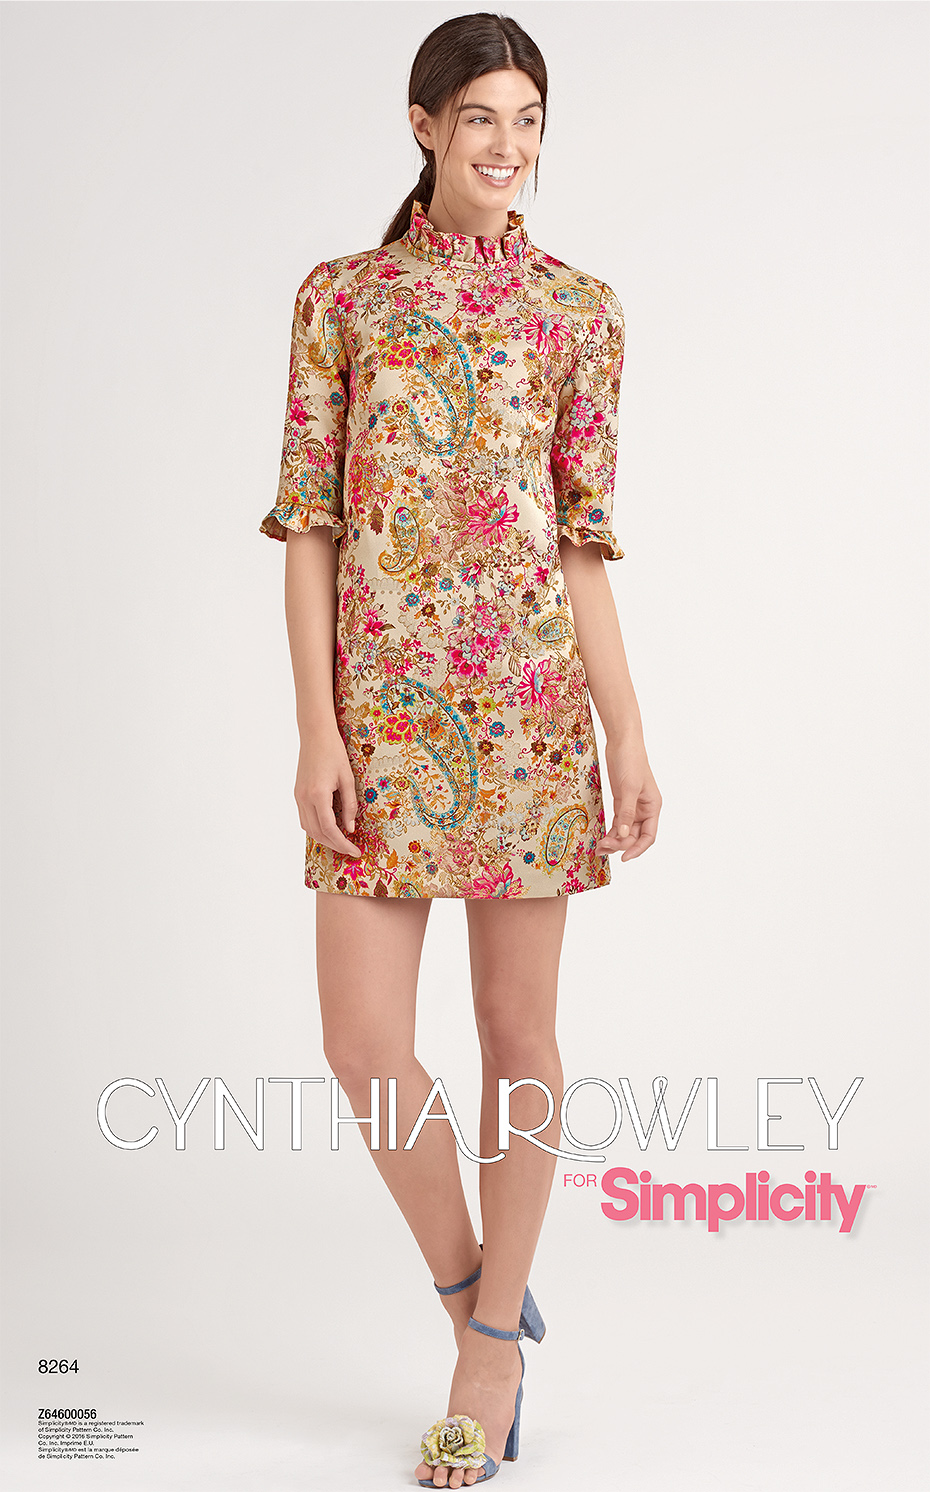 Cynthia Rowley for Simplicity